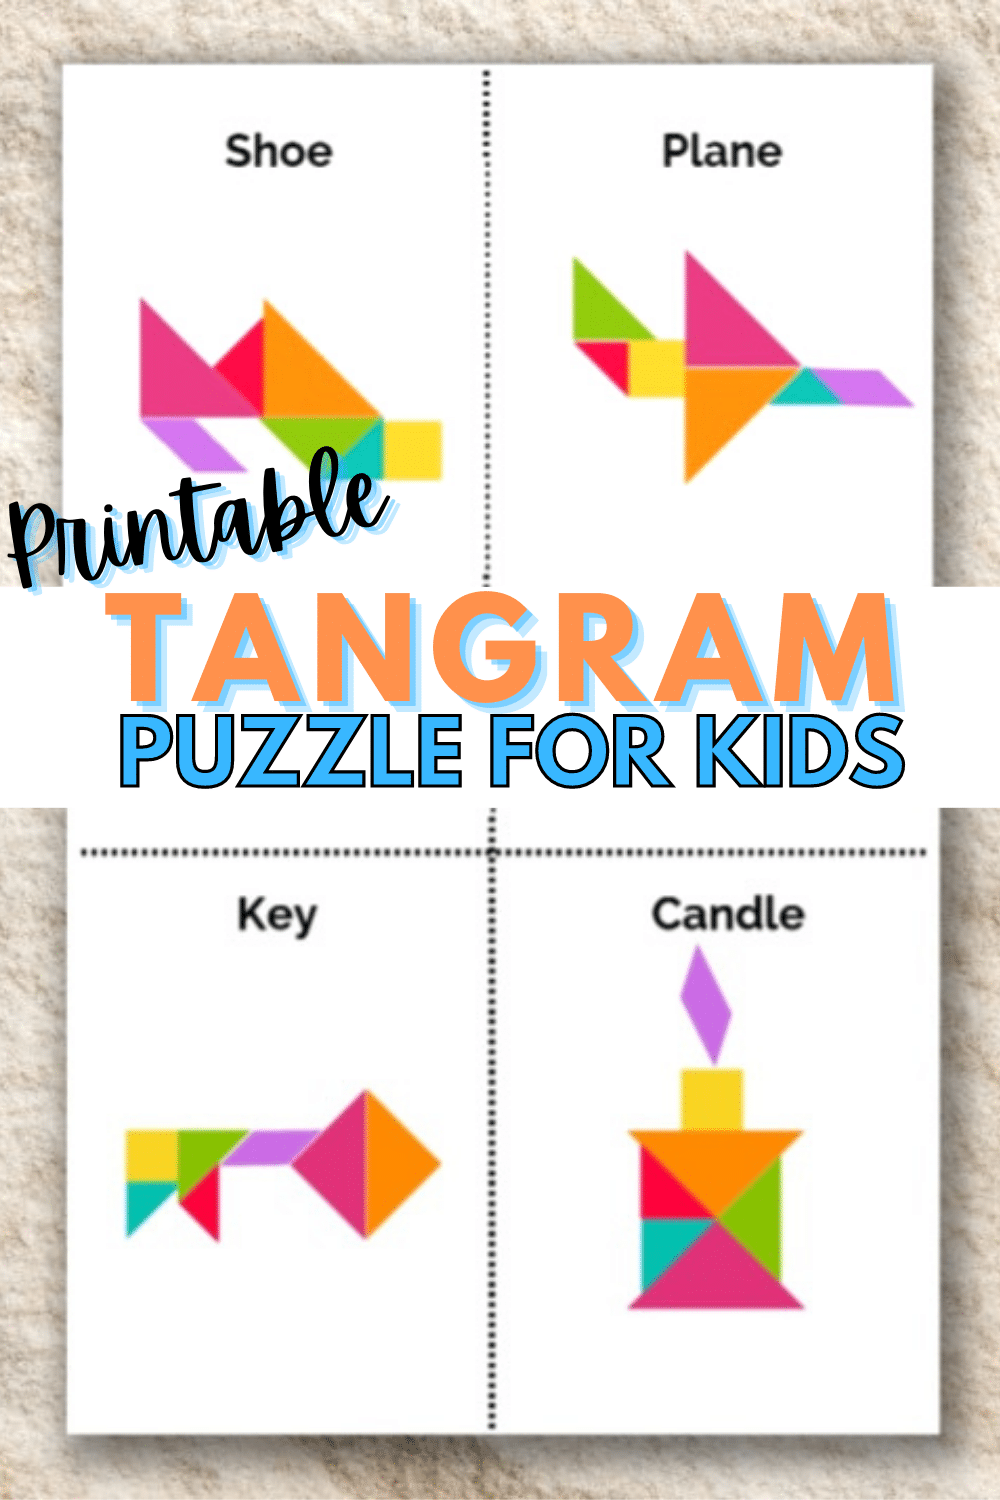 These printable tangram objects are great puzzles to complete. A kids activity that will keep their mind active and they will enjoy it too! #printables #tangrams #puzzles via @wondermomwannab